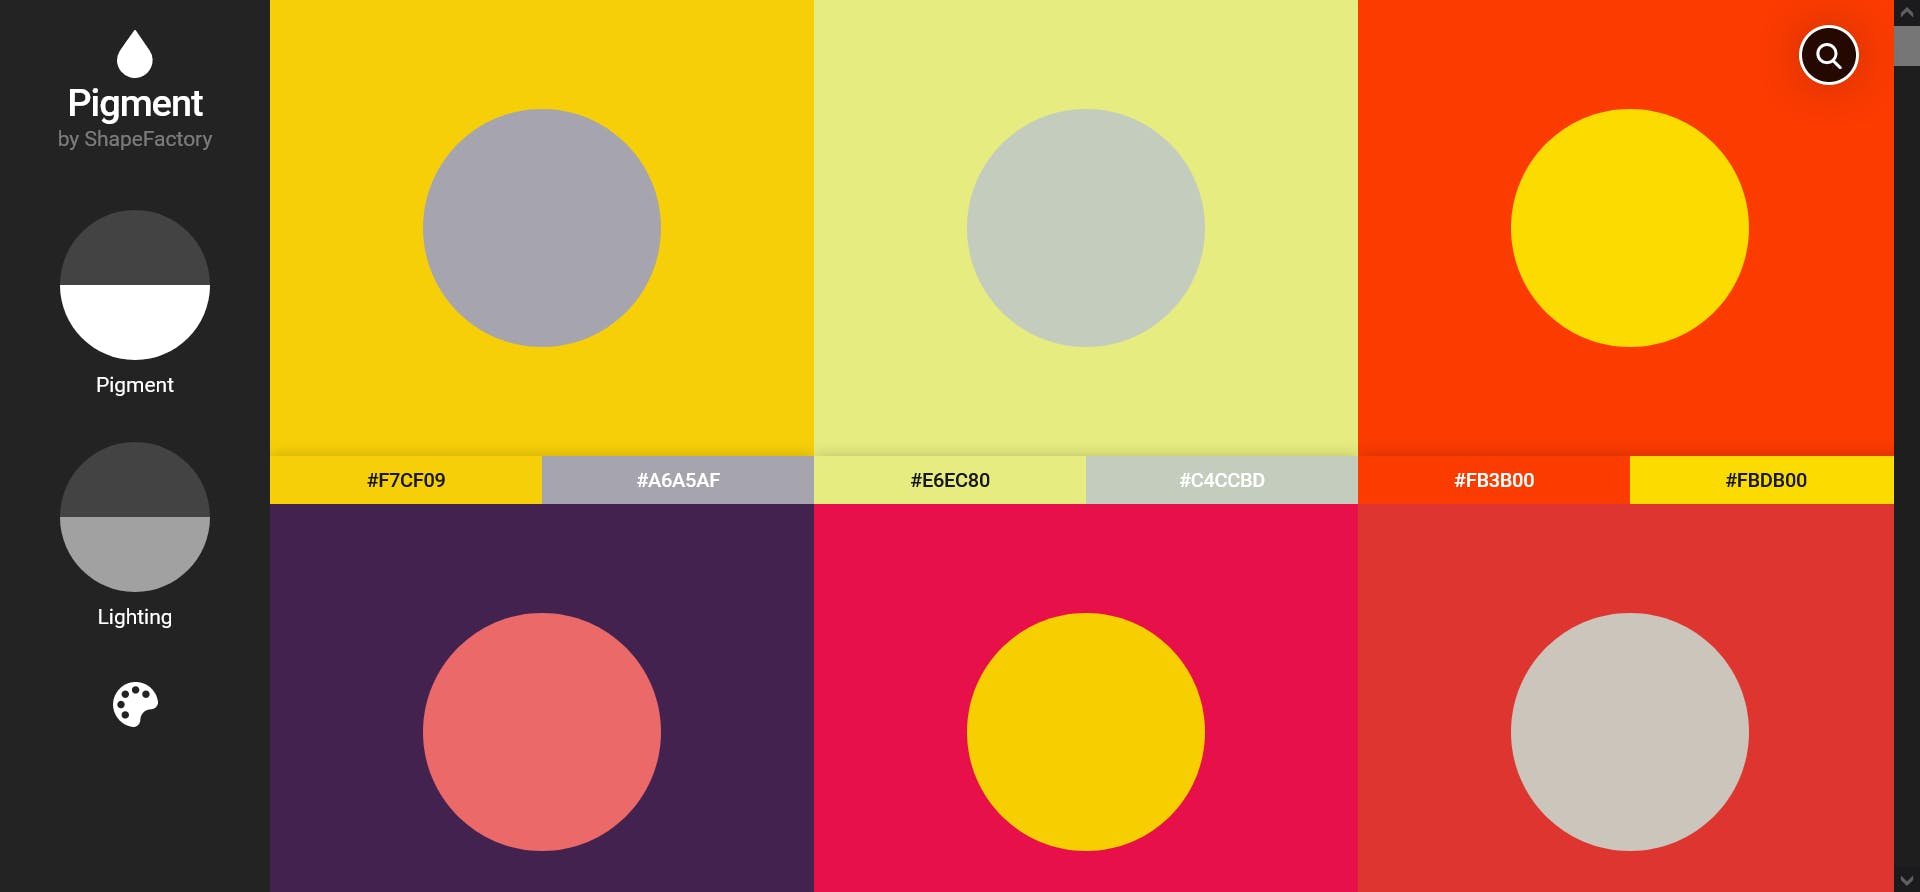 Screenshot 2021-04-30 at 08-13-55 Pigment by ShapeFactory Simple Color Palette Generator.png